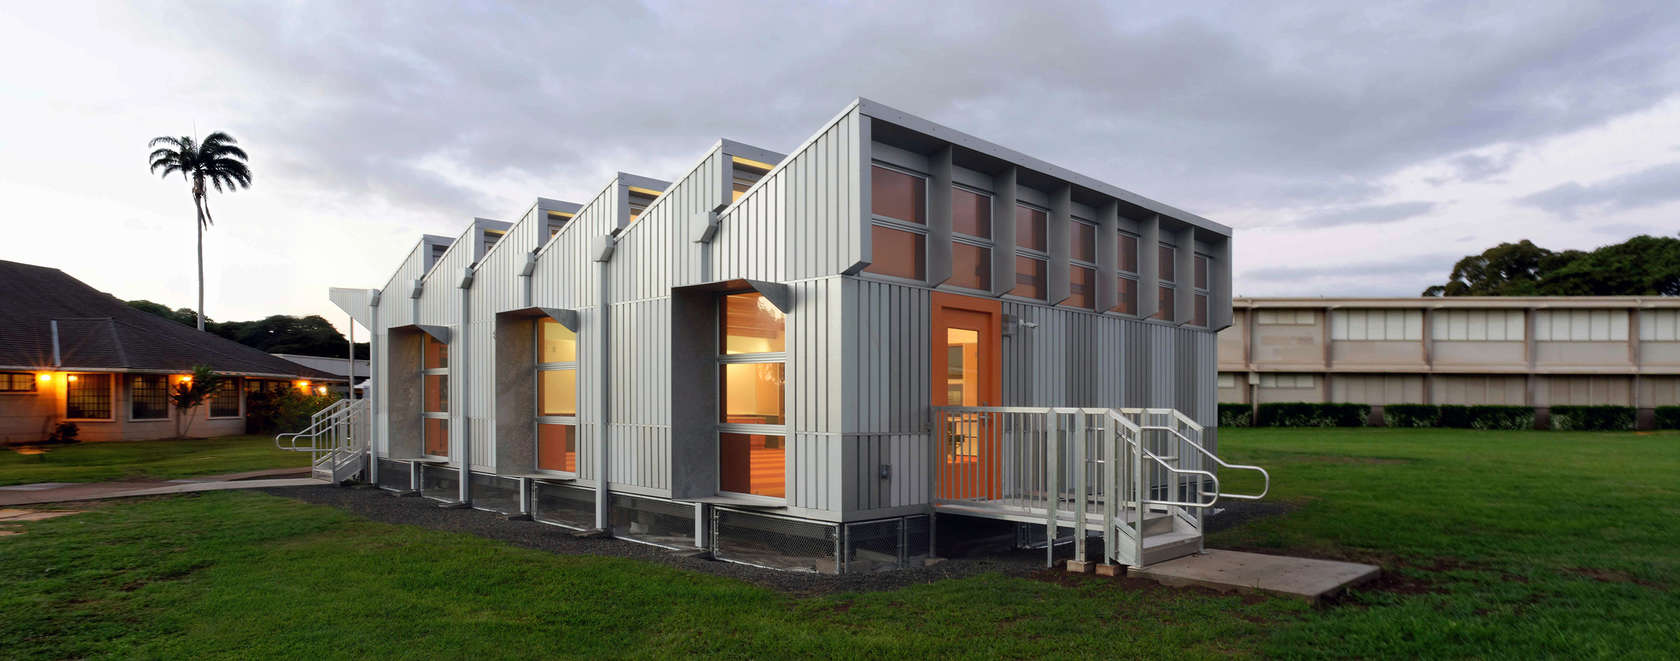 Energy positive relocatable classroom architizer for Anderson architects